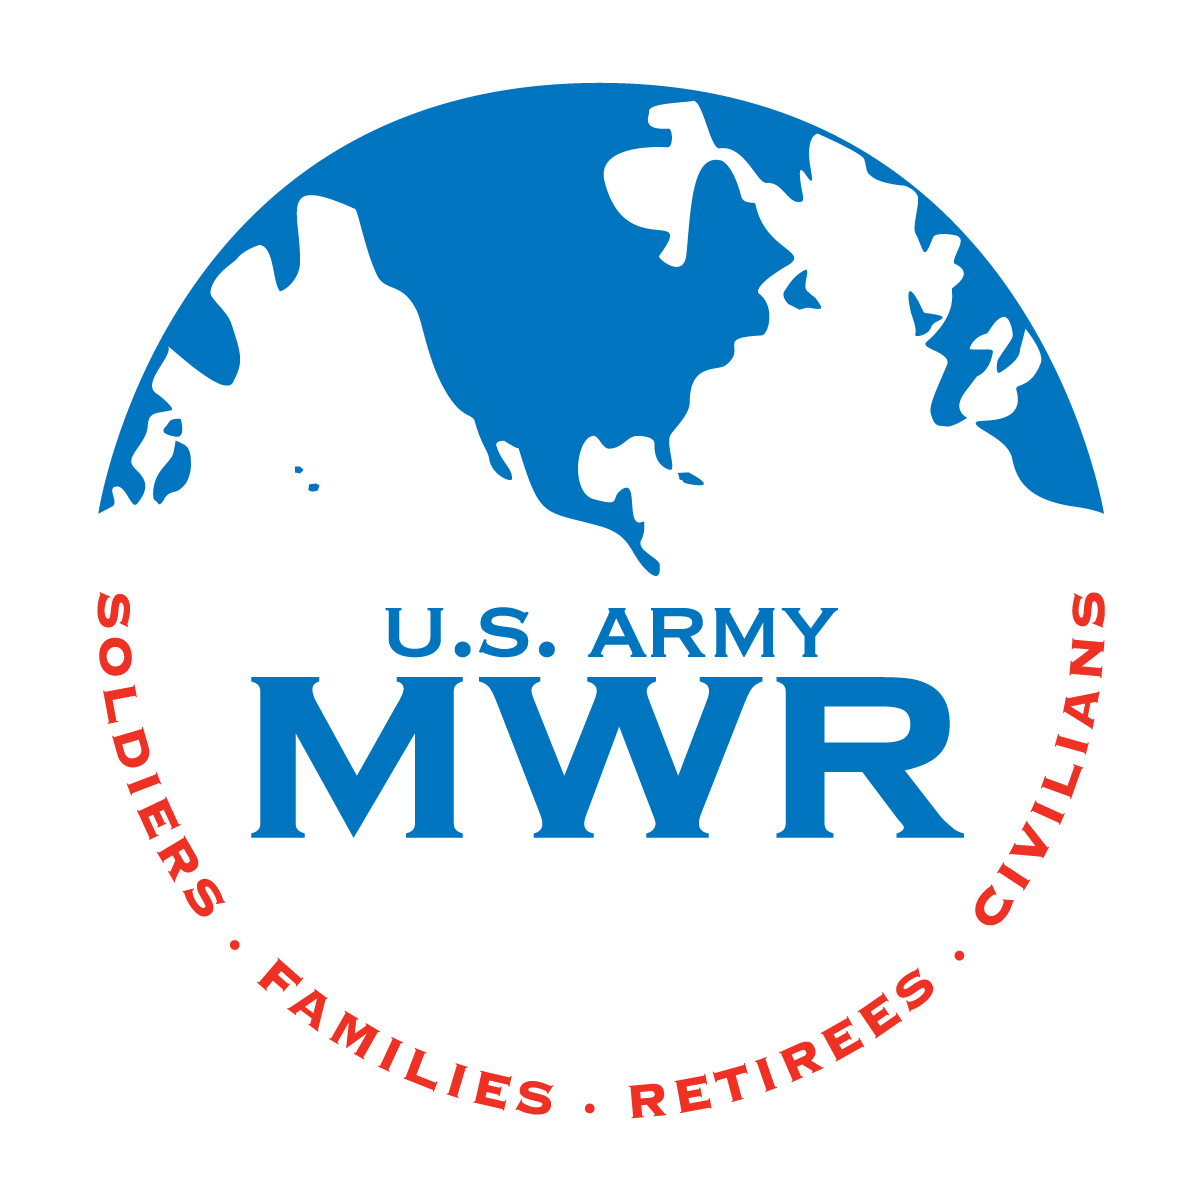 United States Army's Family and MWR Programs - Wikipedia